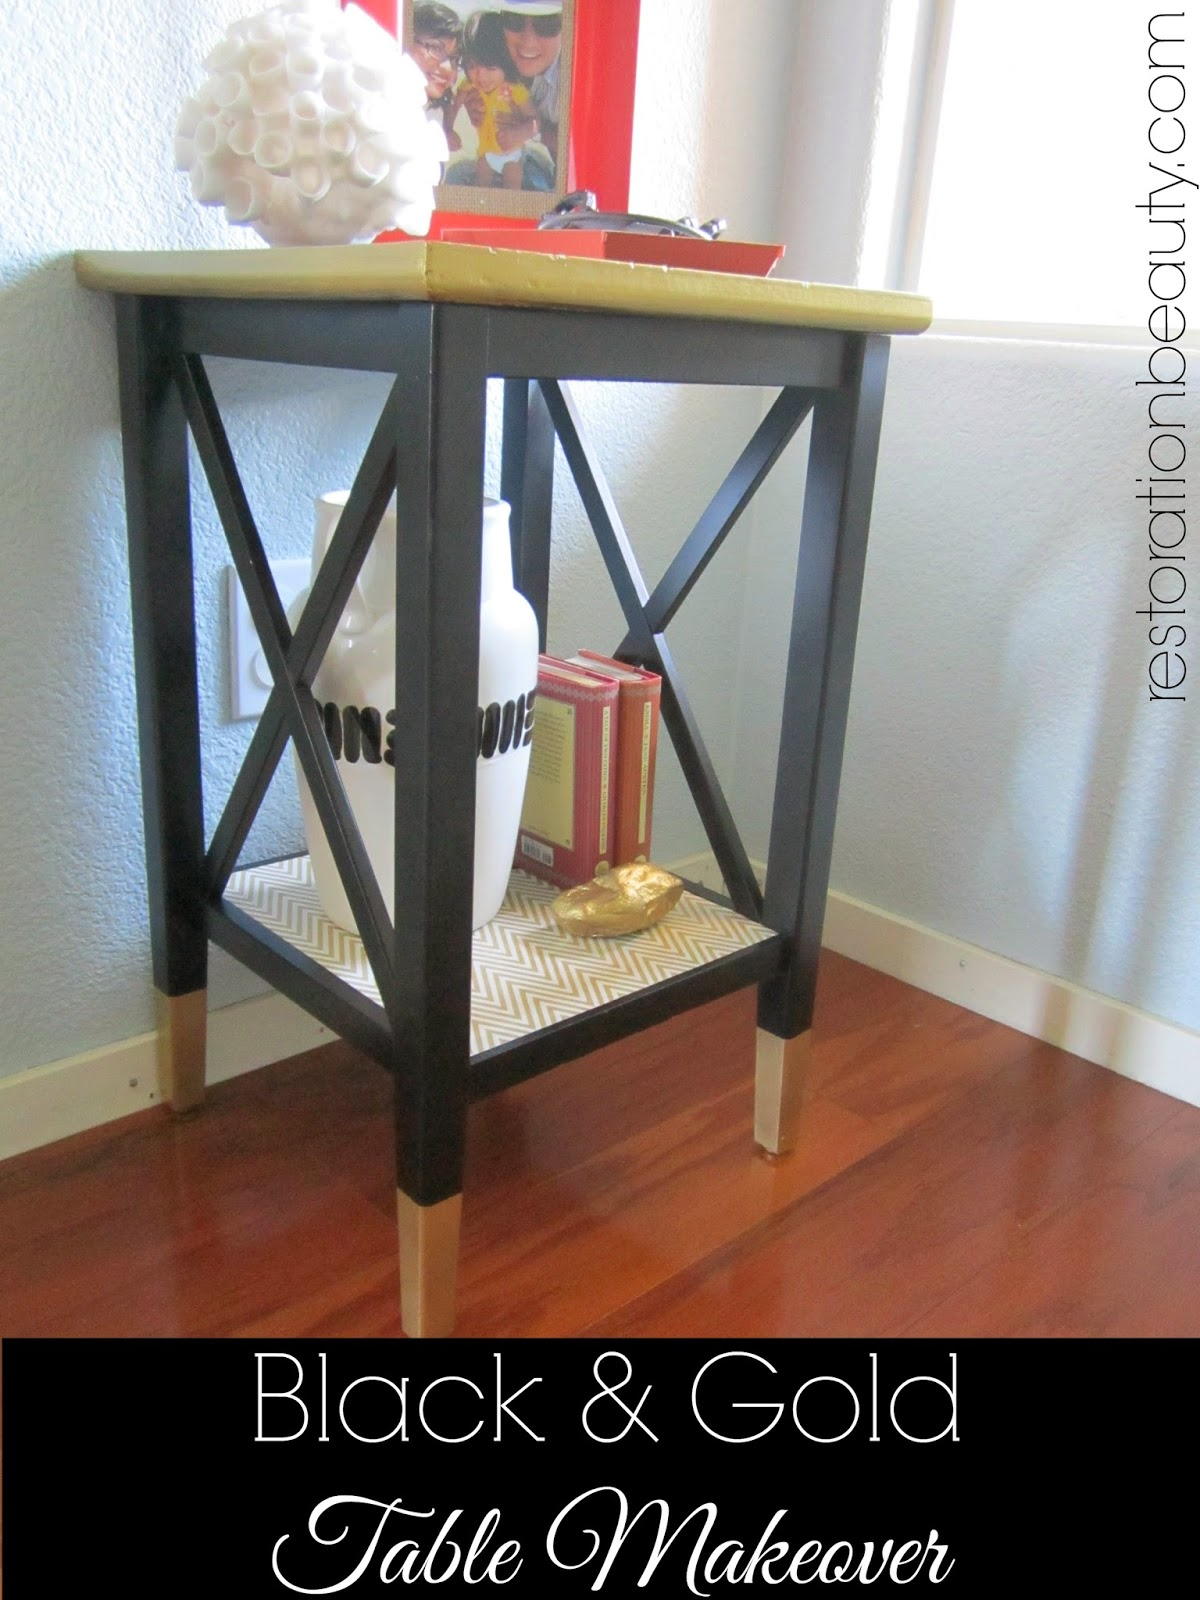 Black & Gold Table Makeover